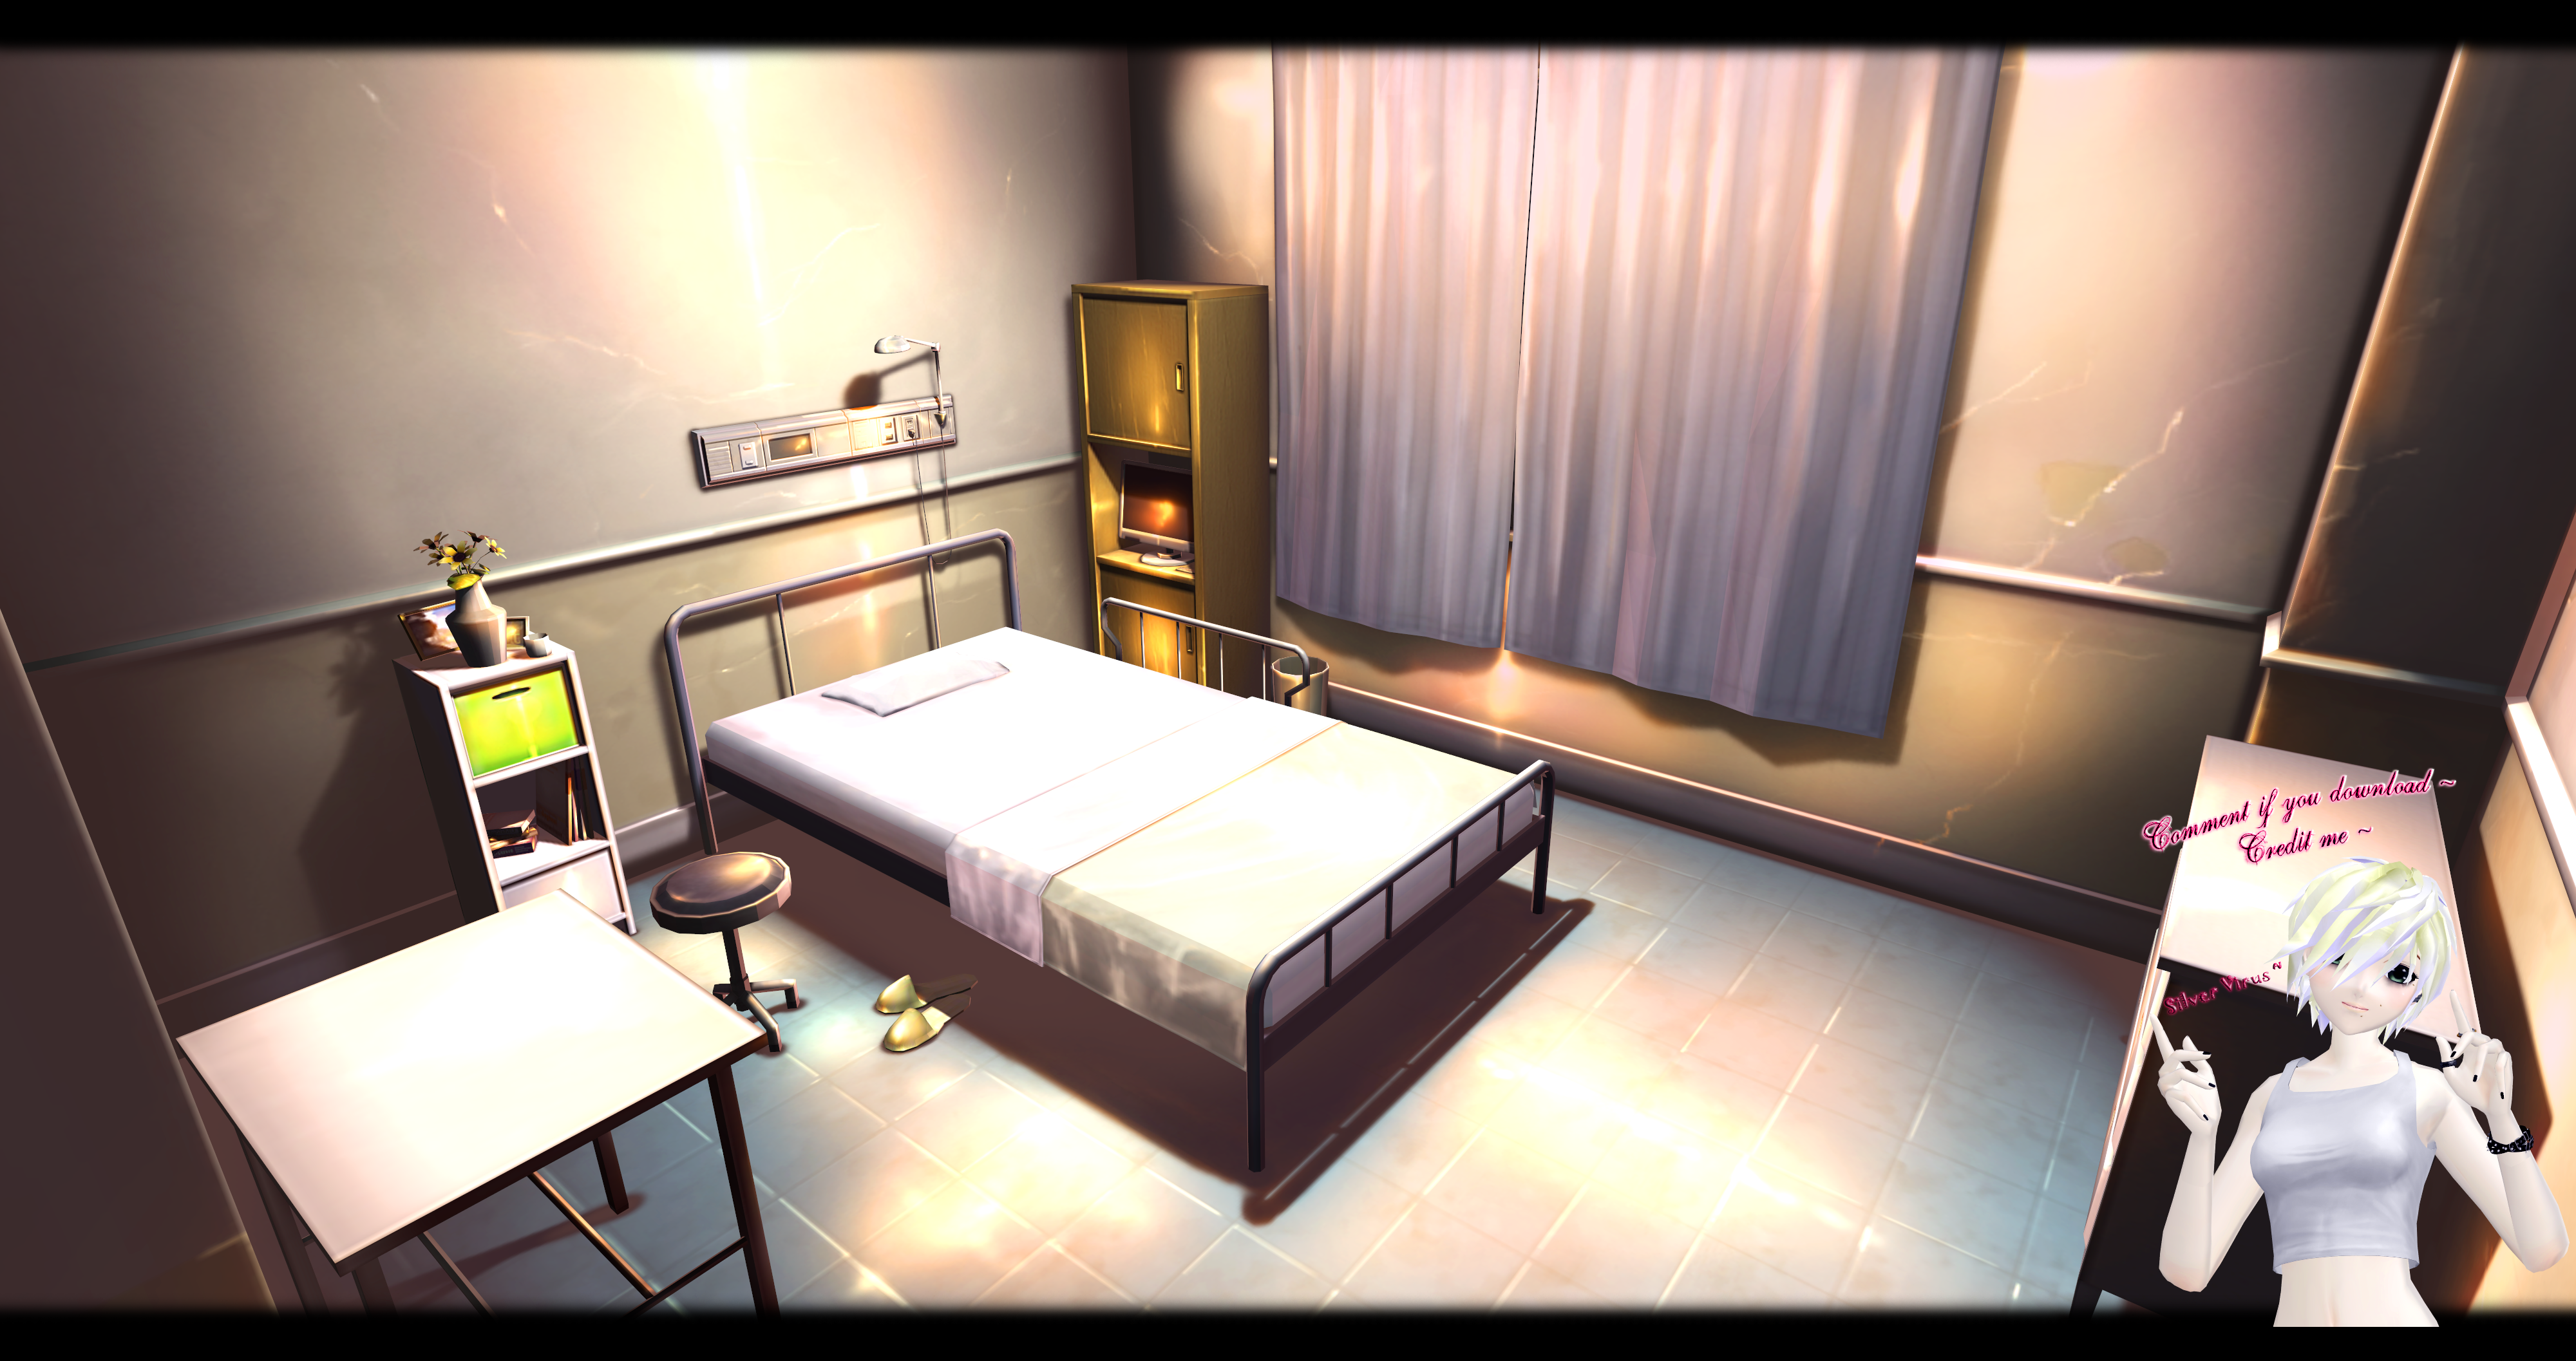 Mmd Hospital Room Dl By O Dsv O On Deviantart